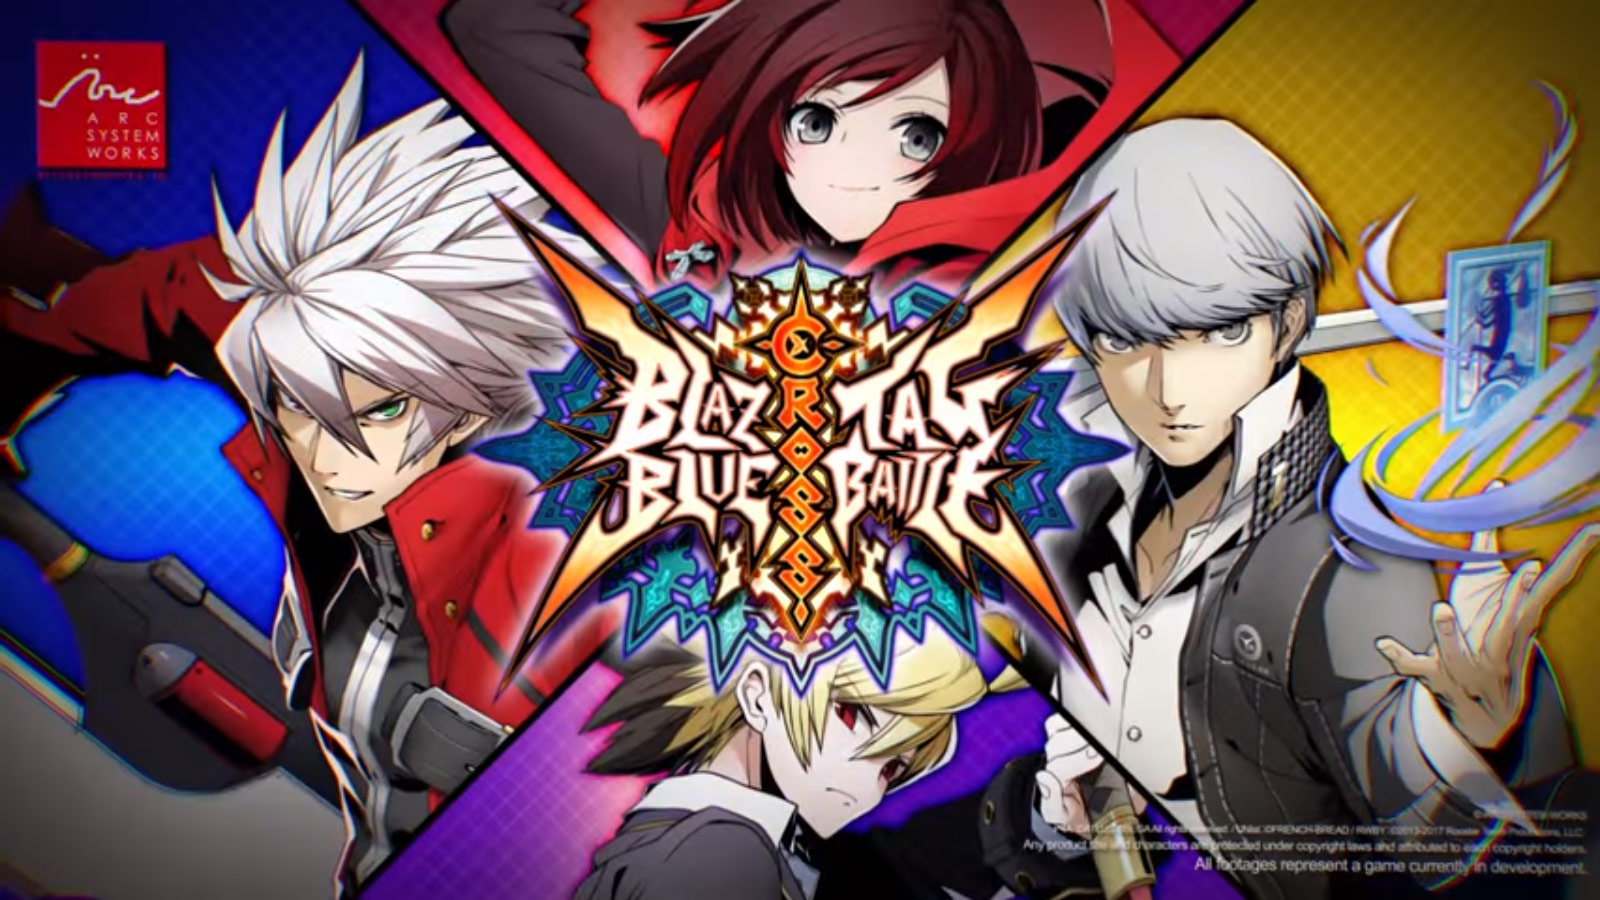 Annunciato BlazBlue Cross Tag Battle